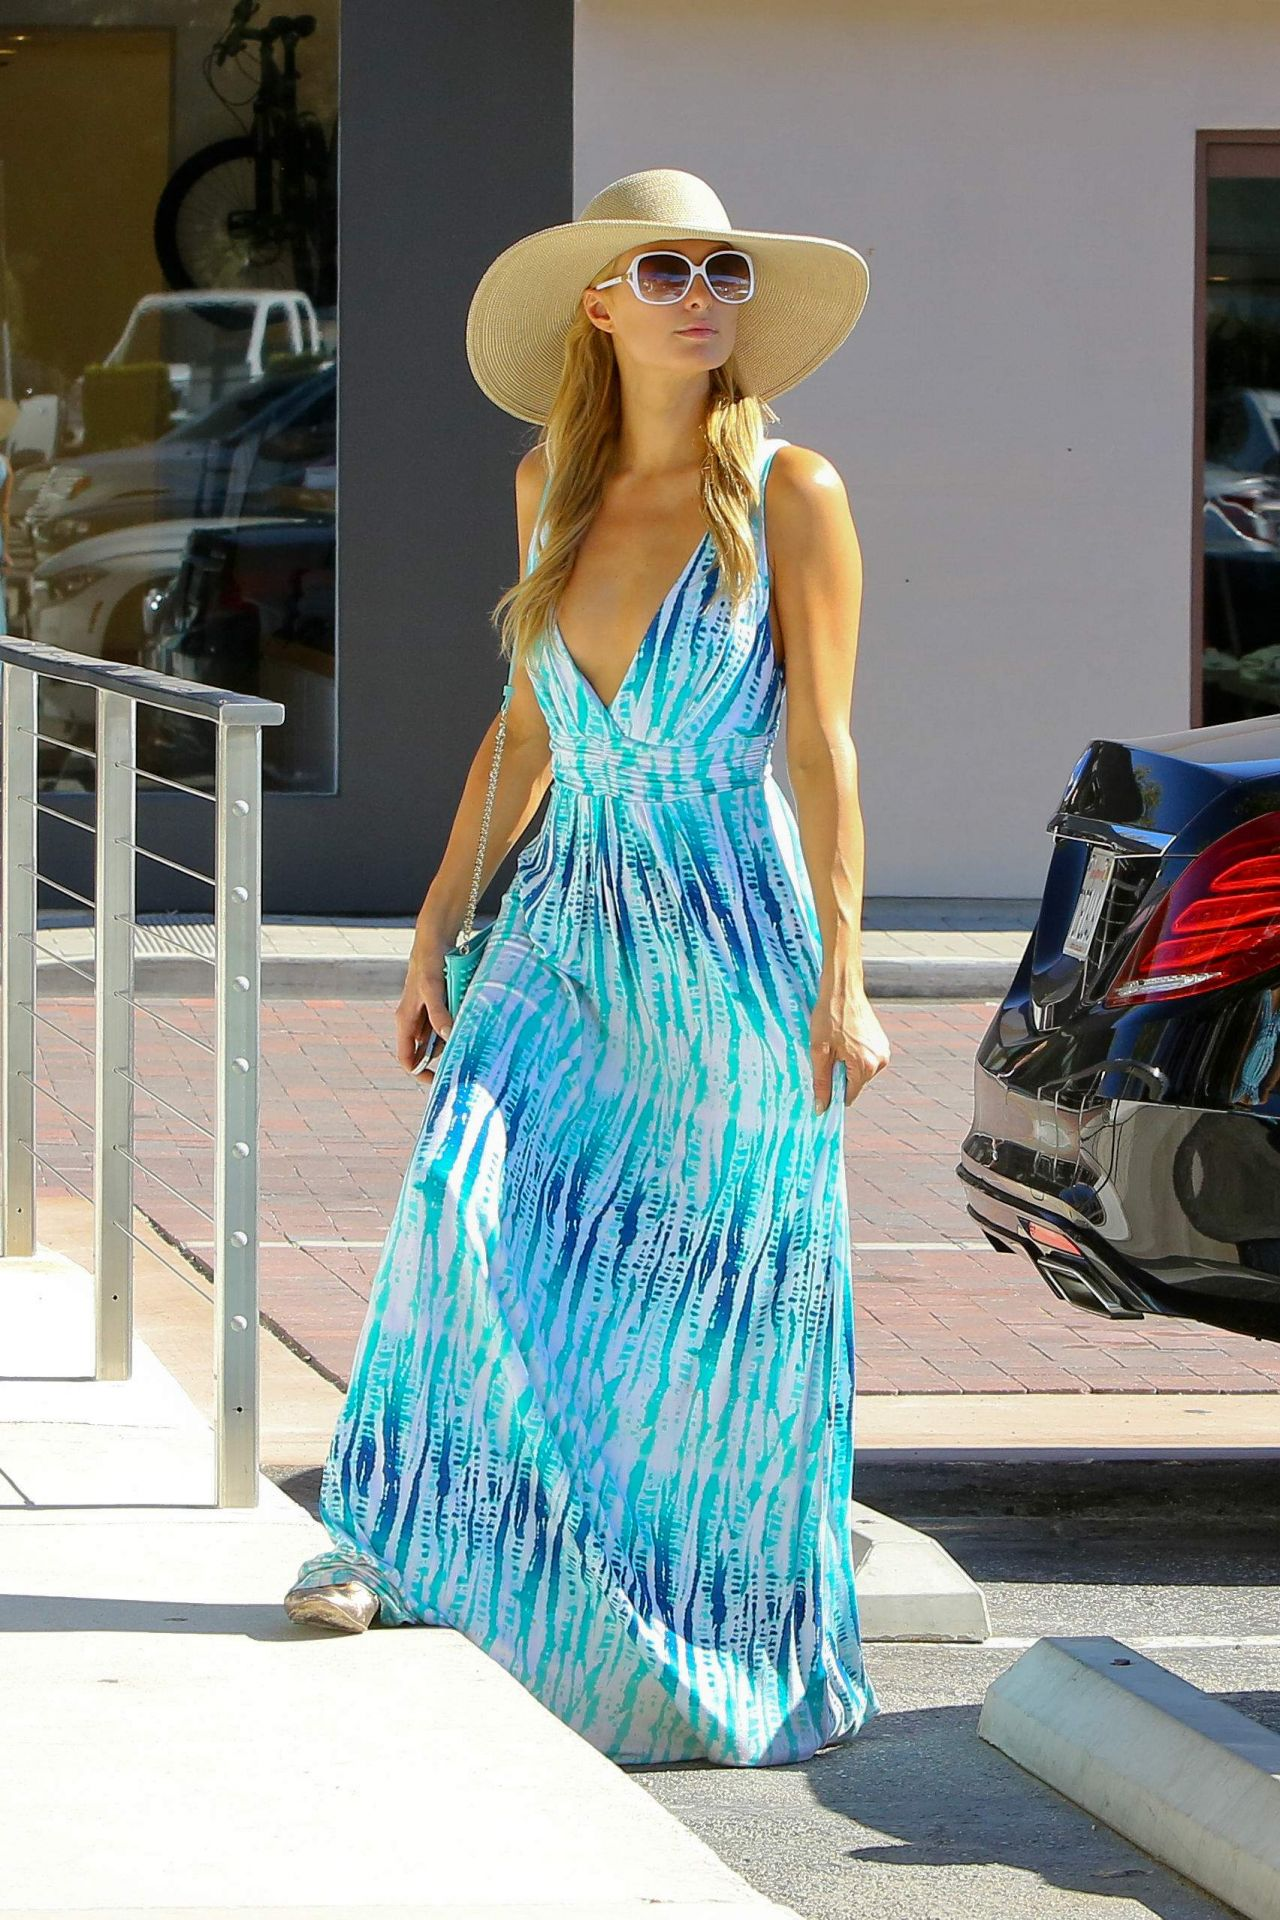 paris hilton in a blue and white dress for a visit to the